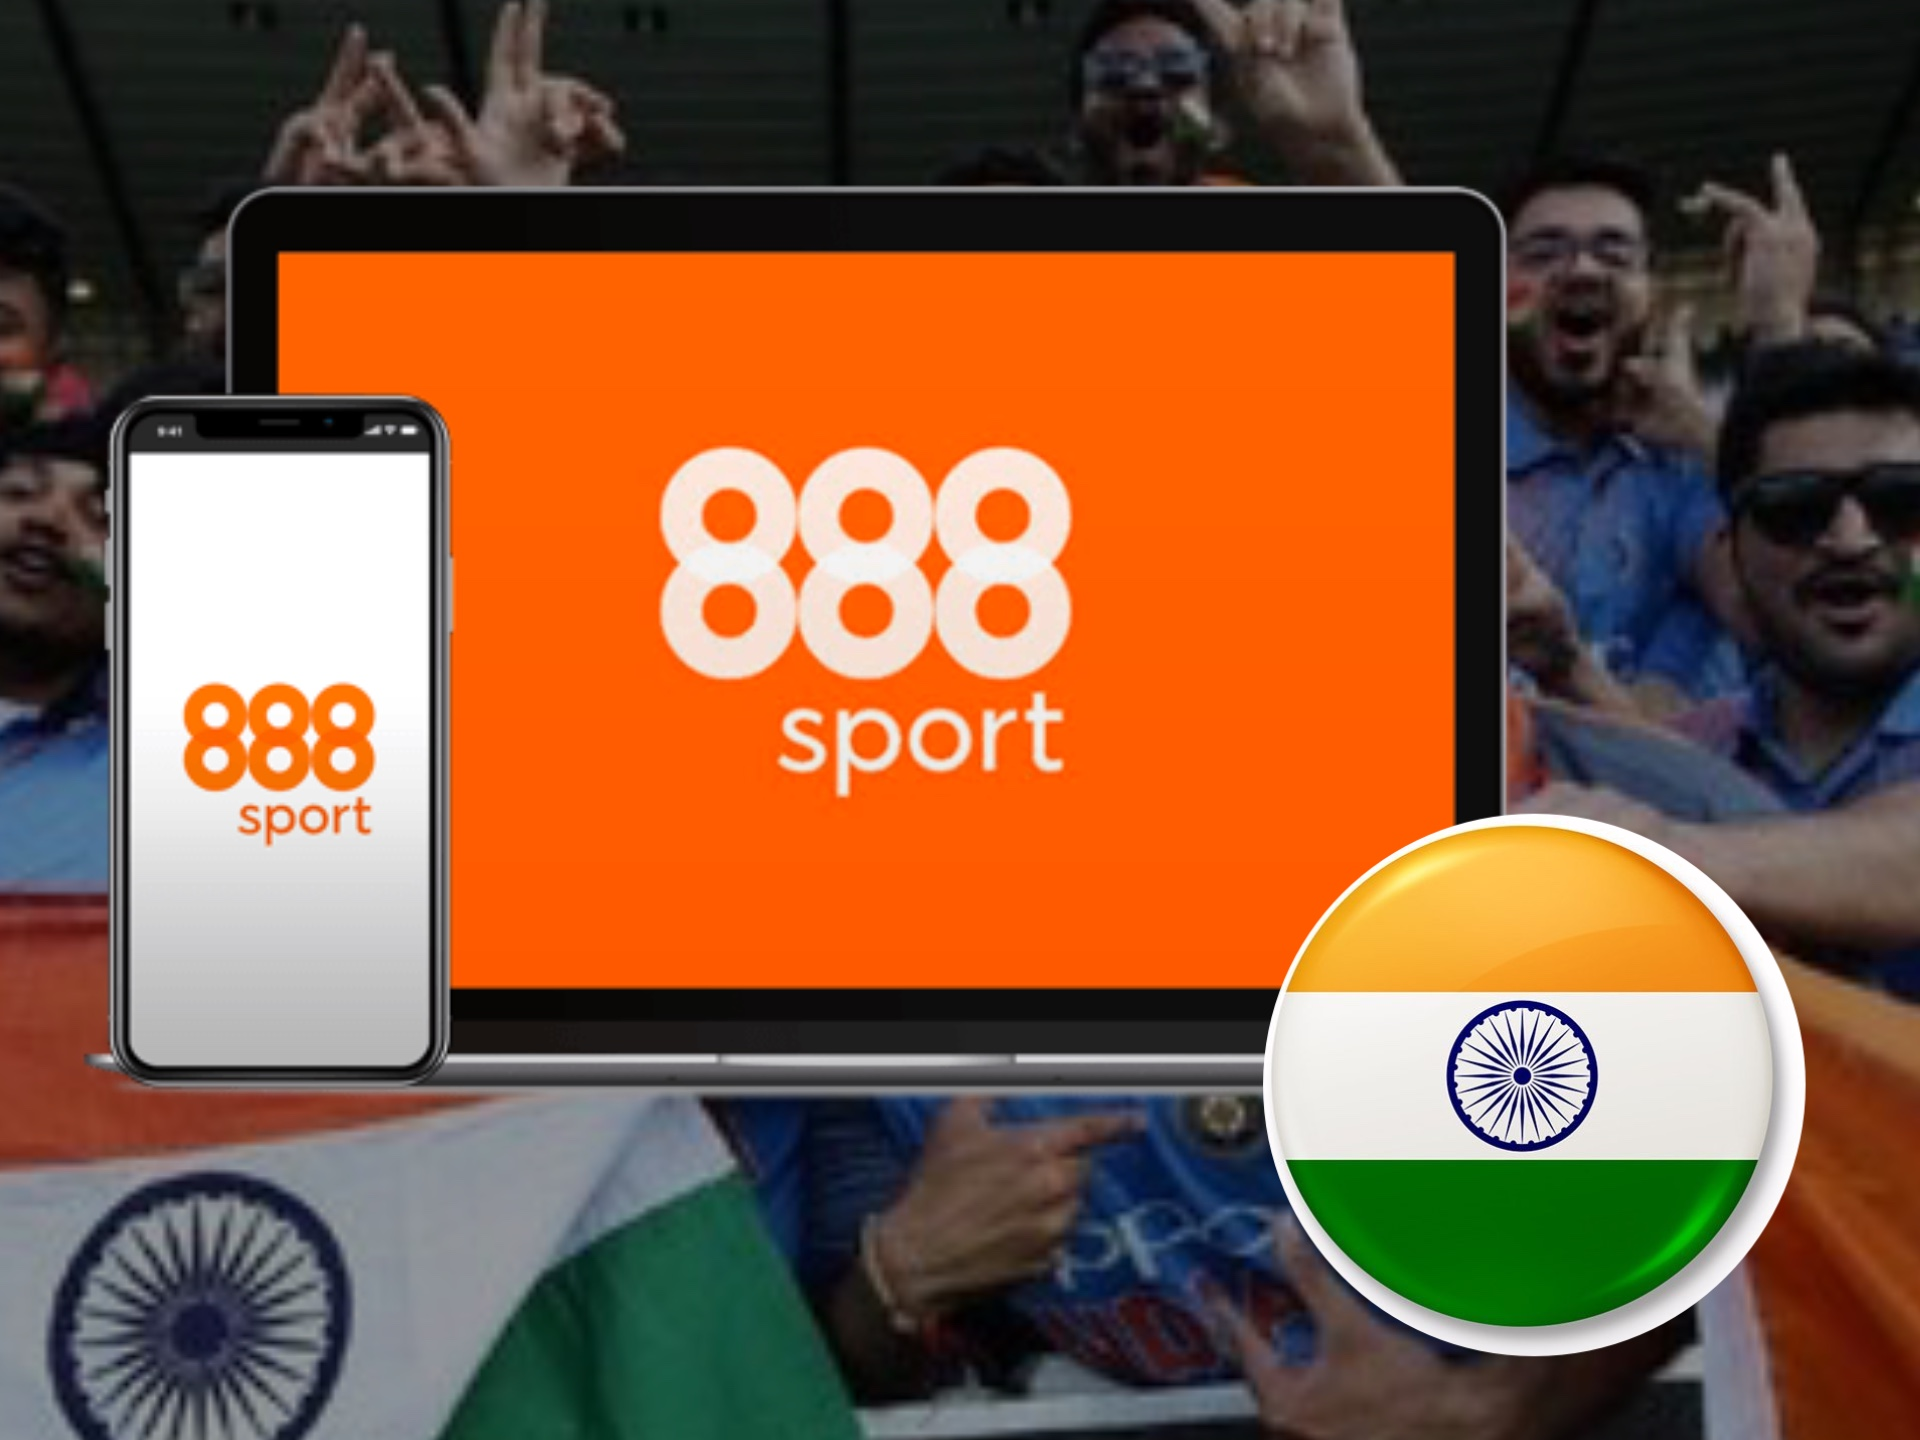 Register at 888sport and place cricket bets absoluteley safely and legally.